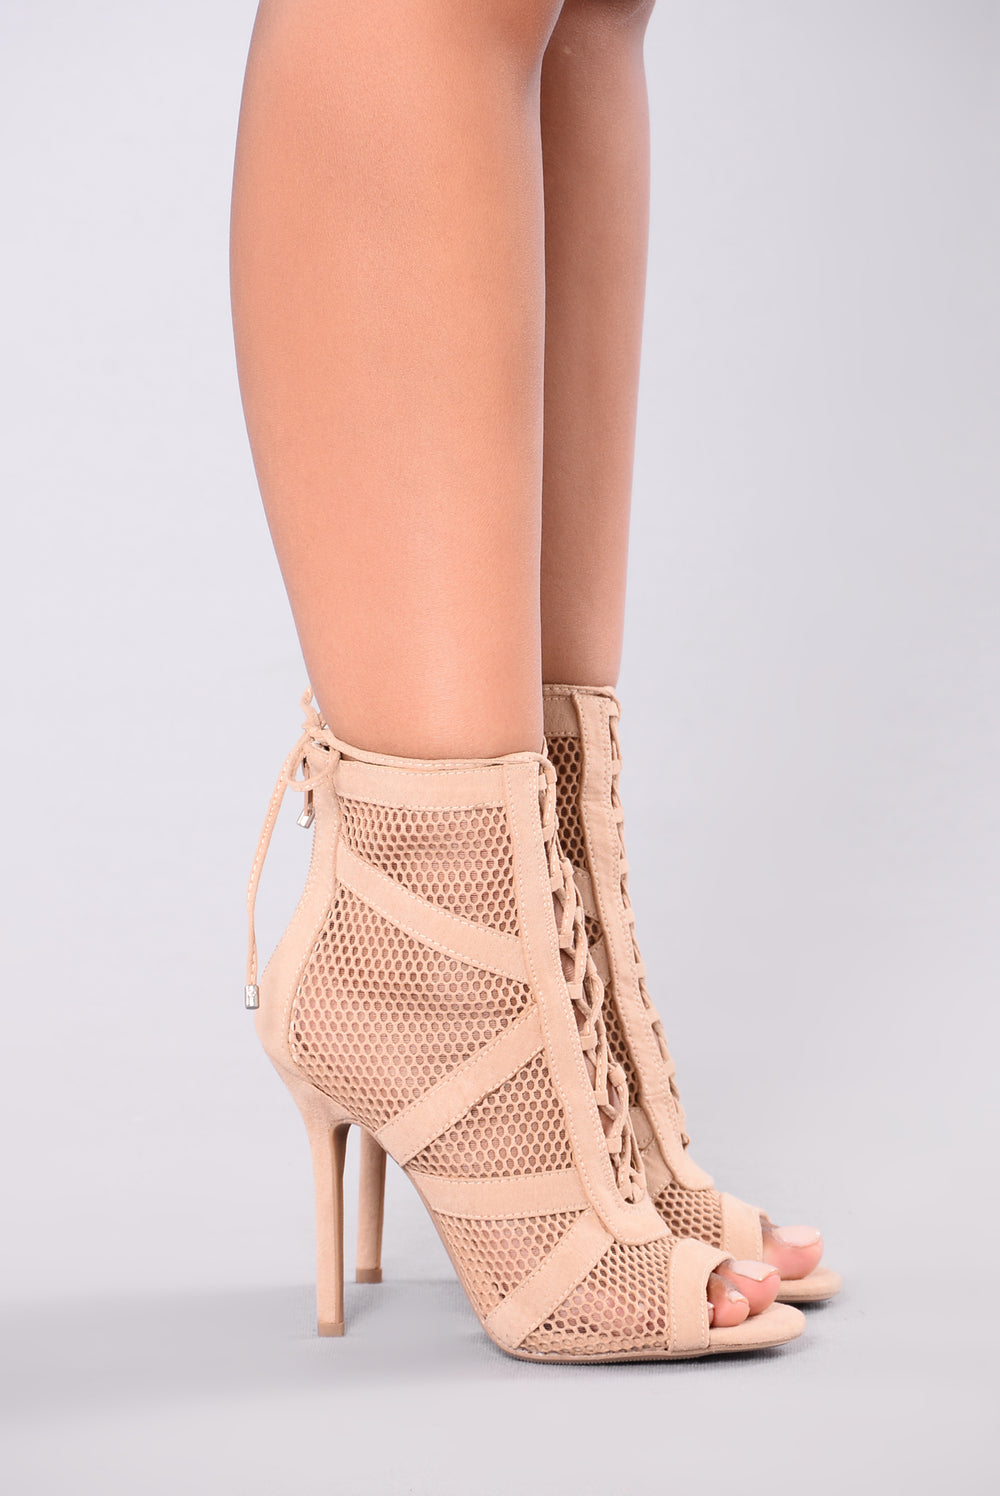 Honeycomb Bootie - Natural